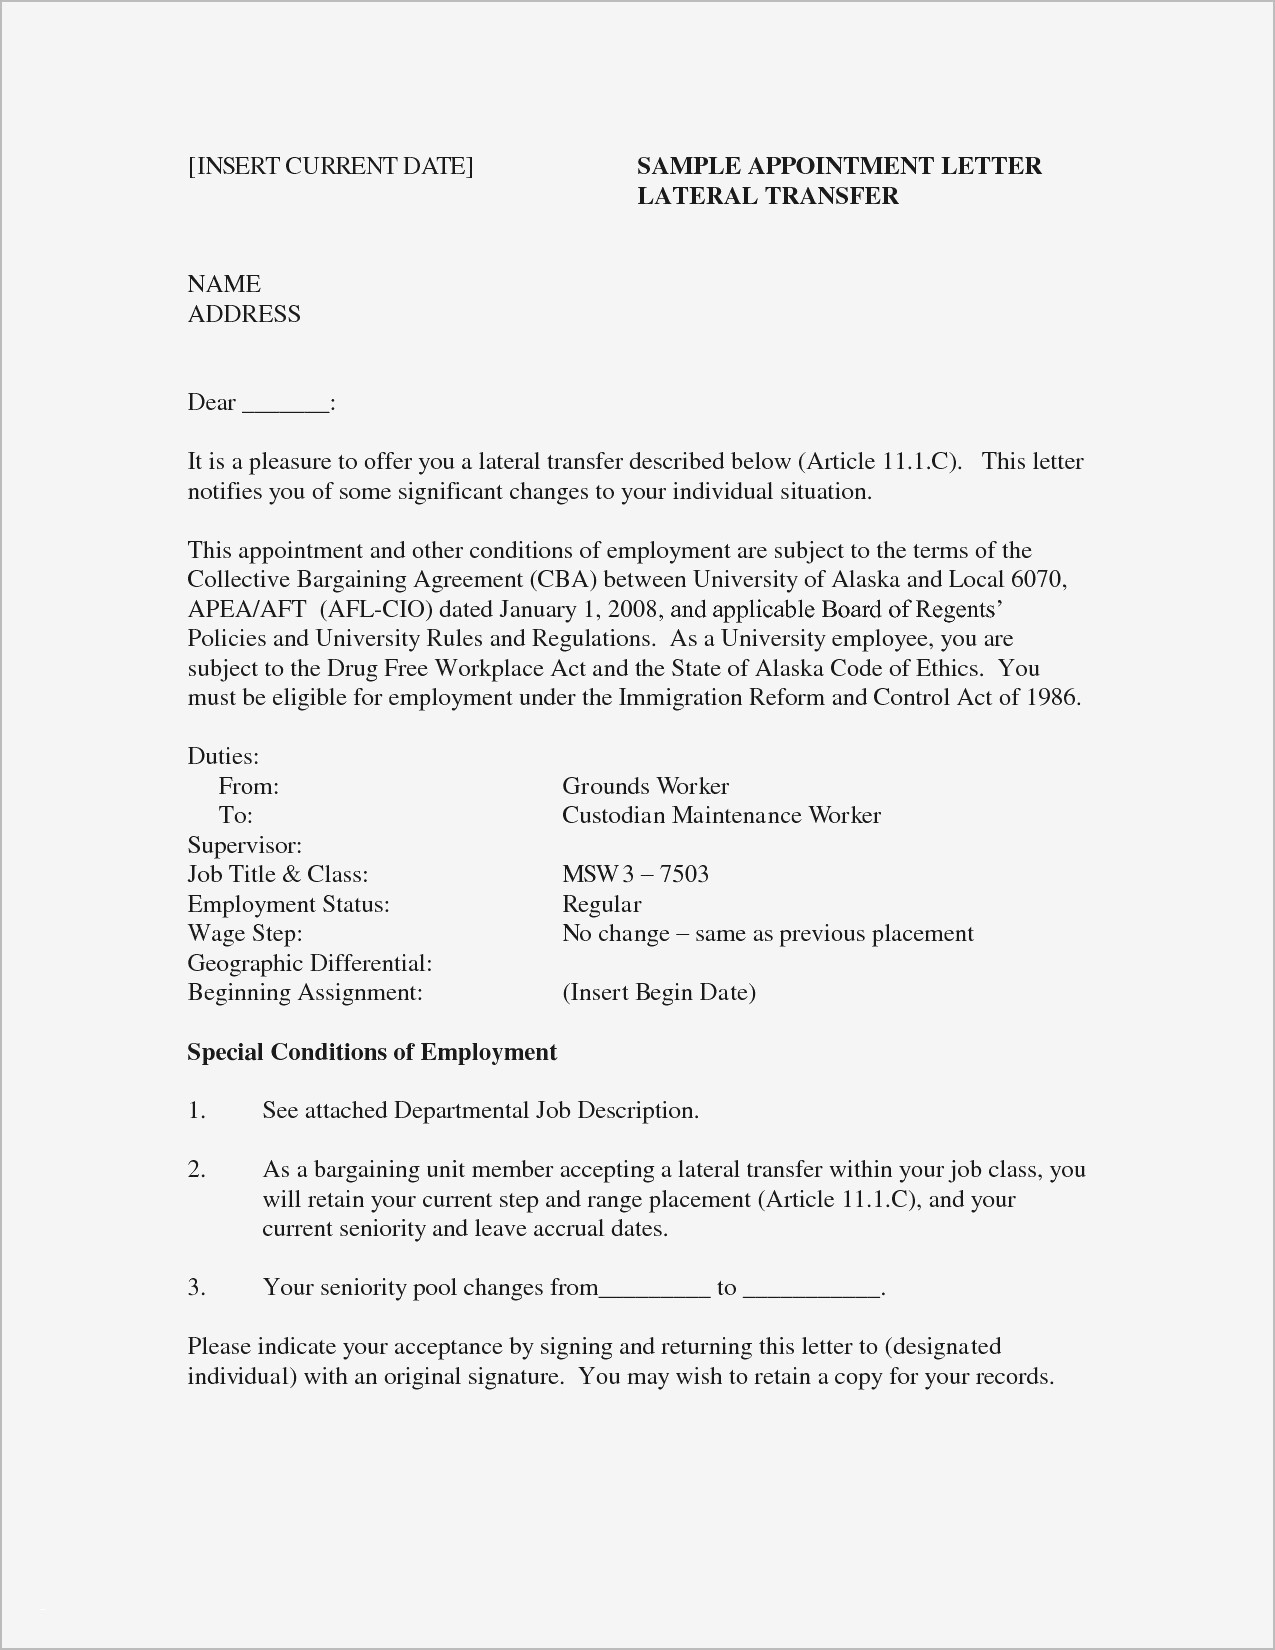 Personal Trainer Resume Template - Inspirational Personal Trainer Resume Template